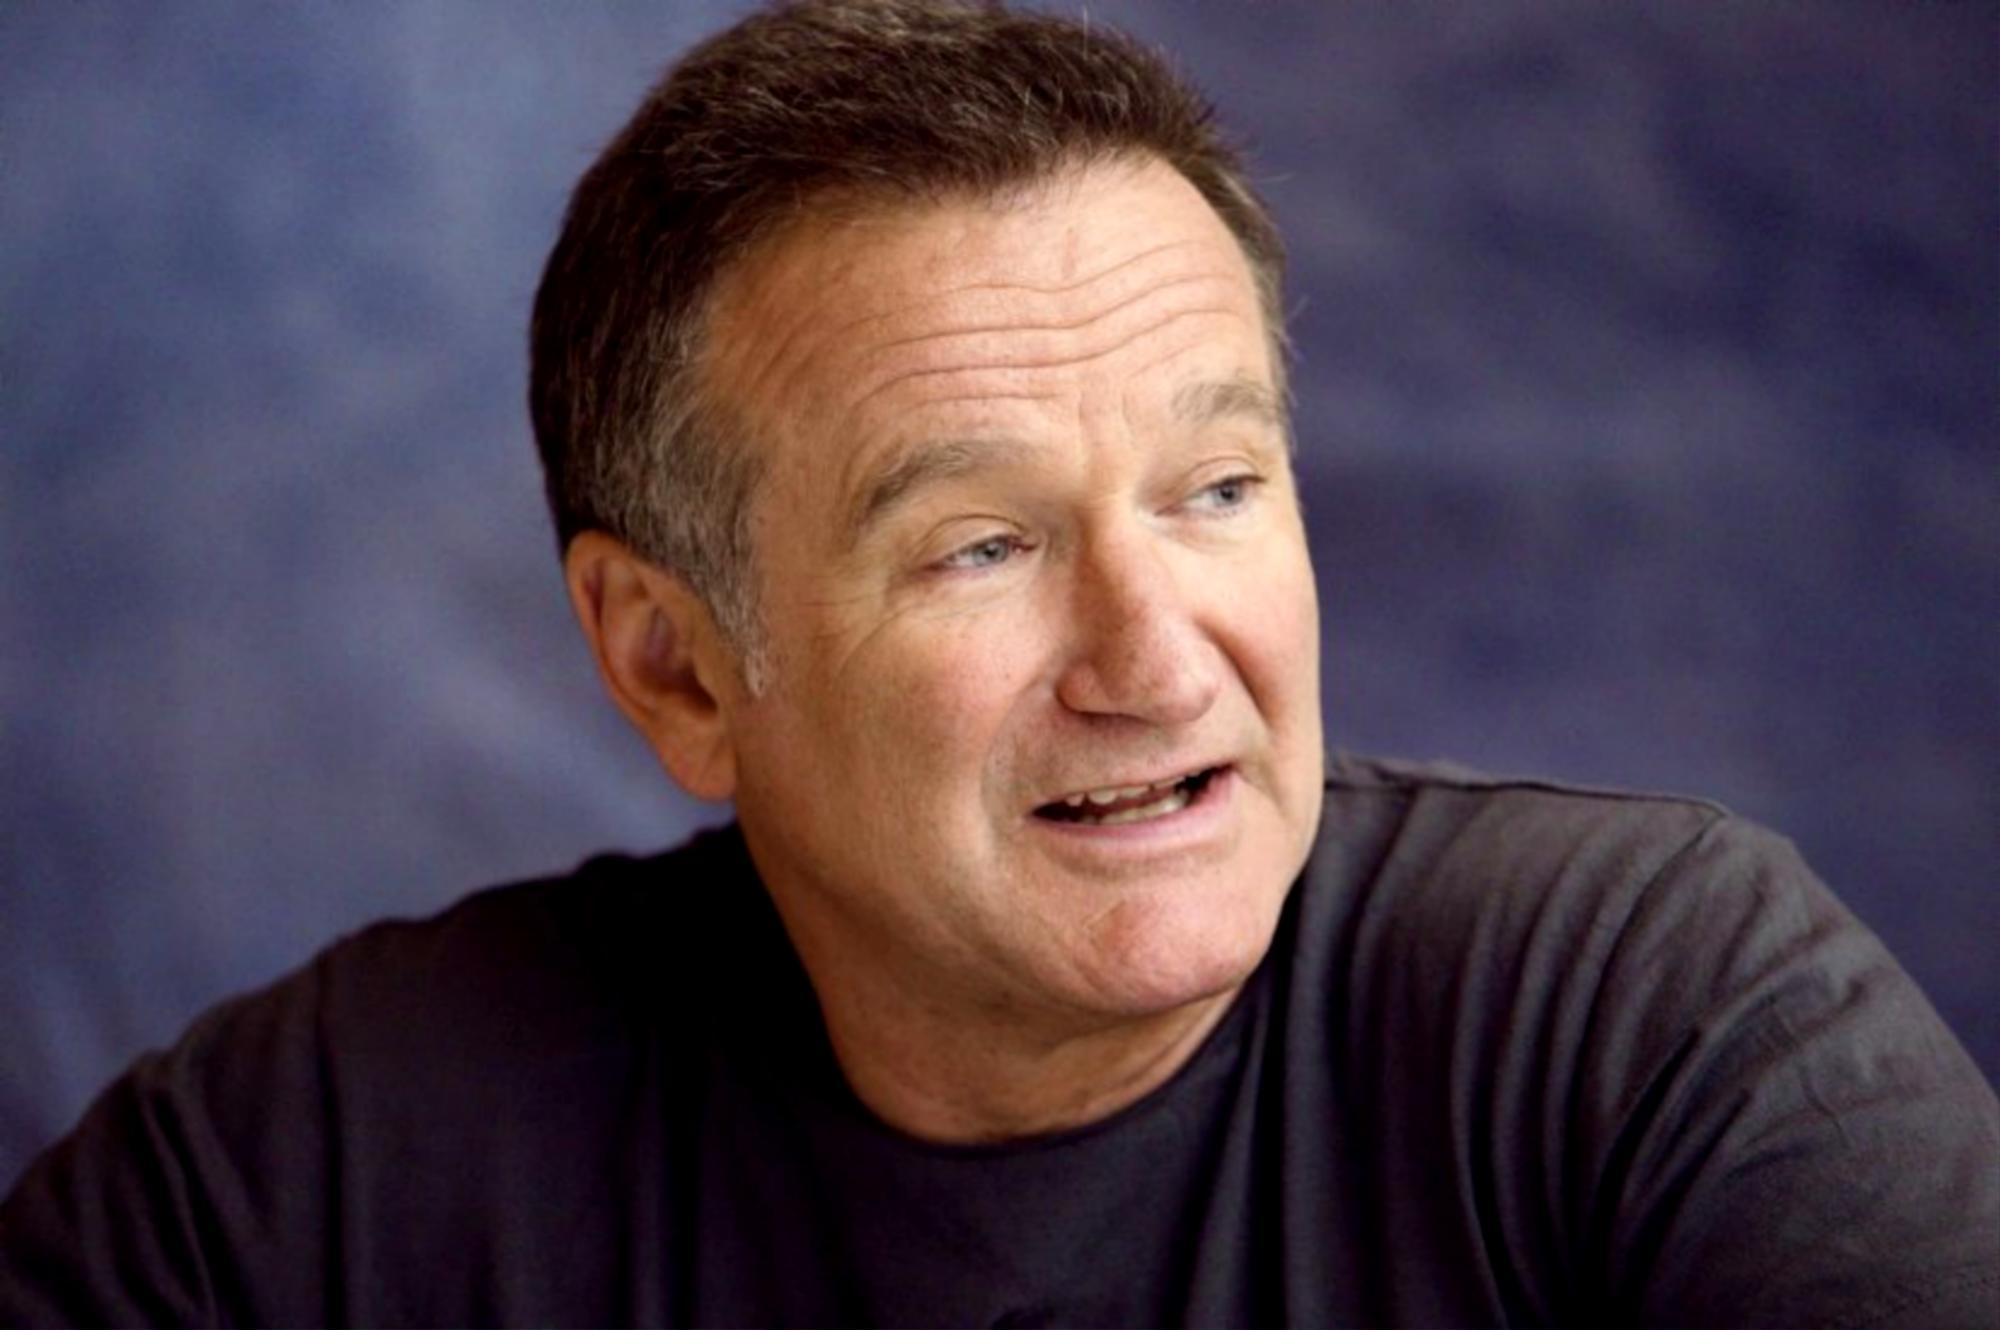 Robin Williams Possible Suicide